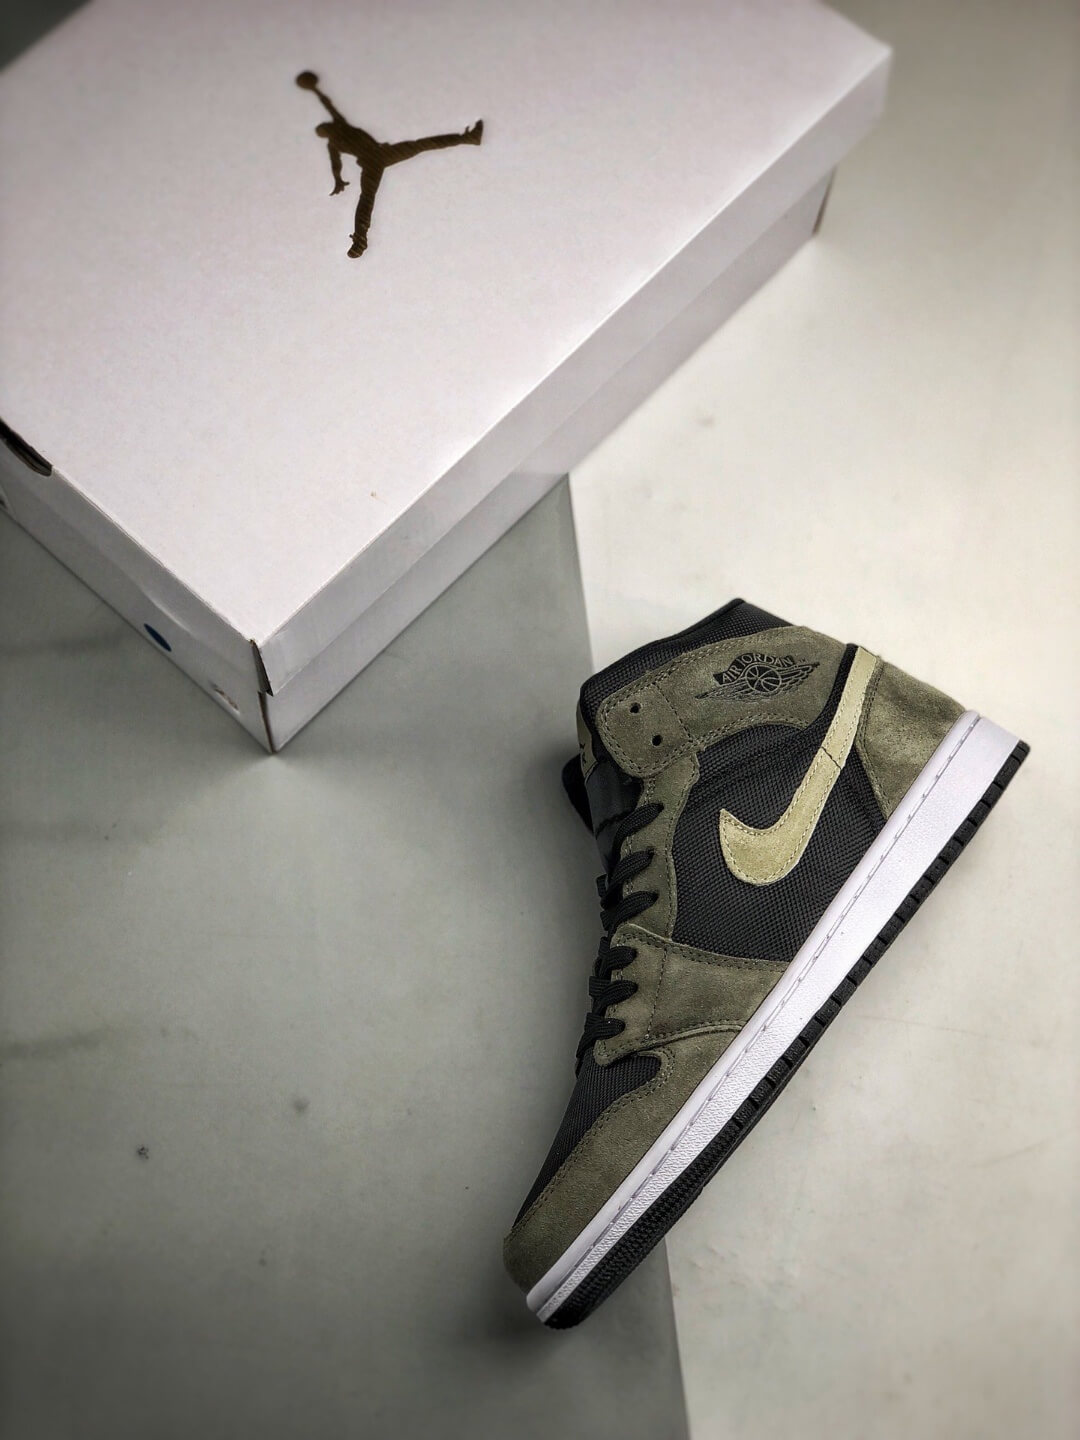 The Nike Wmns Air Jordan 1 Mid Olive Black Mesh Underlay Olive Tan Suede Overlay Repshoes 09